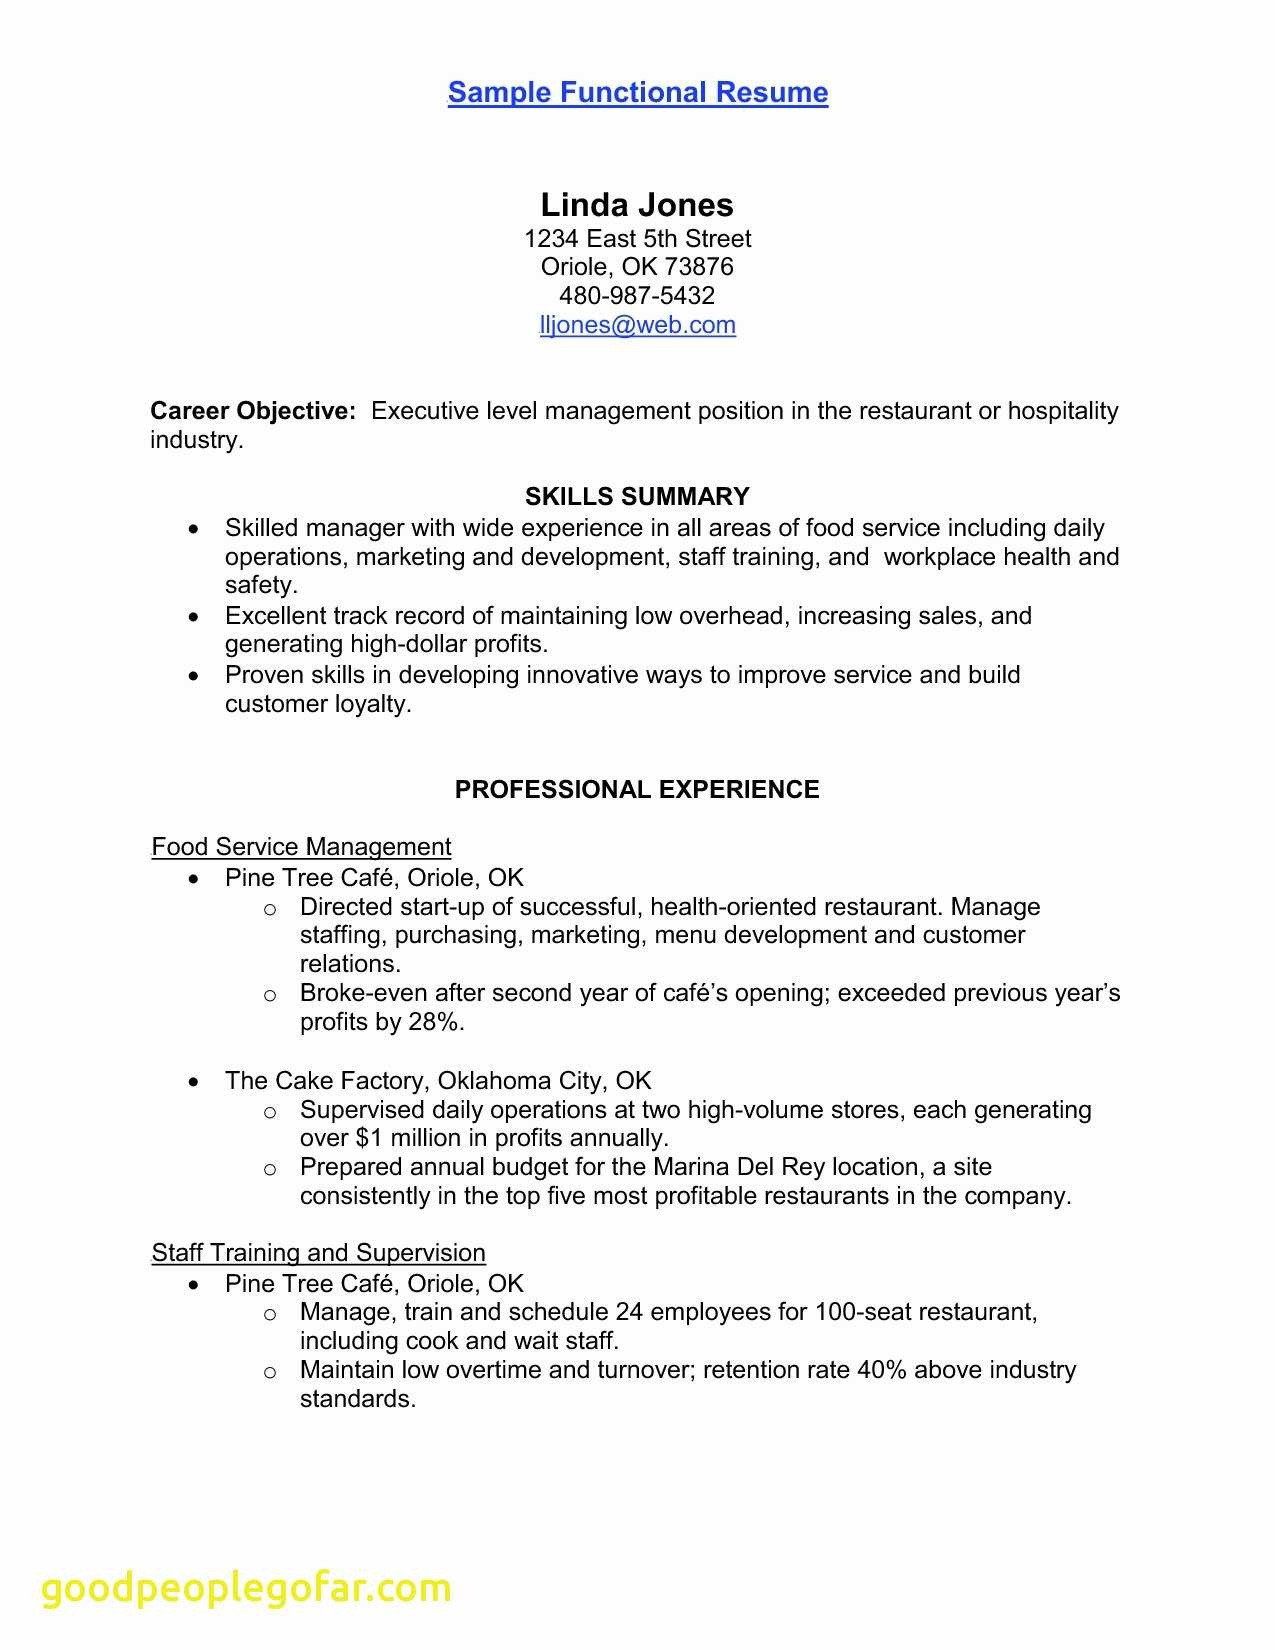 Food Service Resume Template - Vet Tech Resume Fresh Tech Resume Templates Inspirational Obama